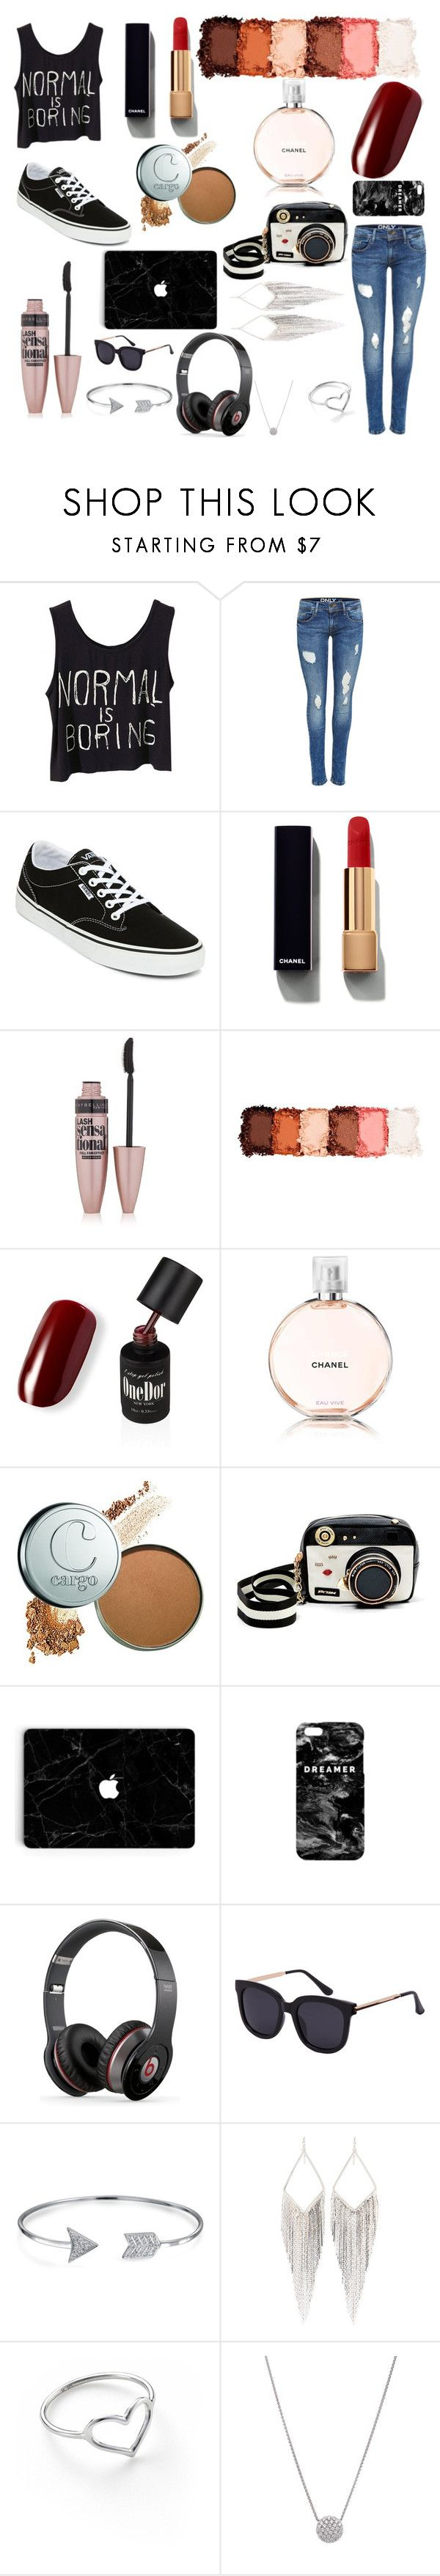 """Idk"" by savage-moves01 ❤ liked on Polyvore featuring Vans, Chanel, Maybelline, NYX, Betsey Johnson, Mr. Gugu & Miss Go, Beats by Dr. Dre, Bling Jewelry, Jules Smith and Jordan Askill"